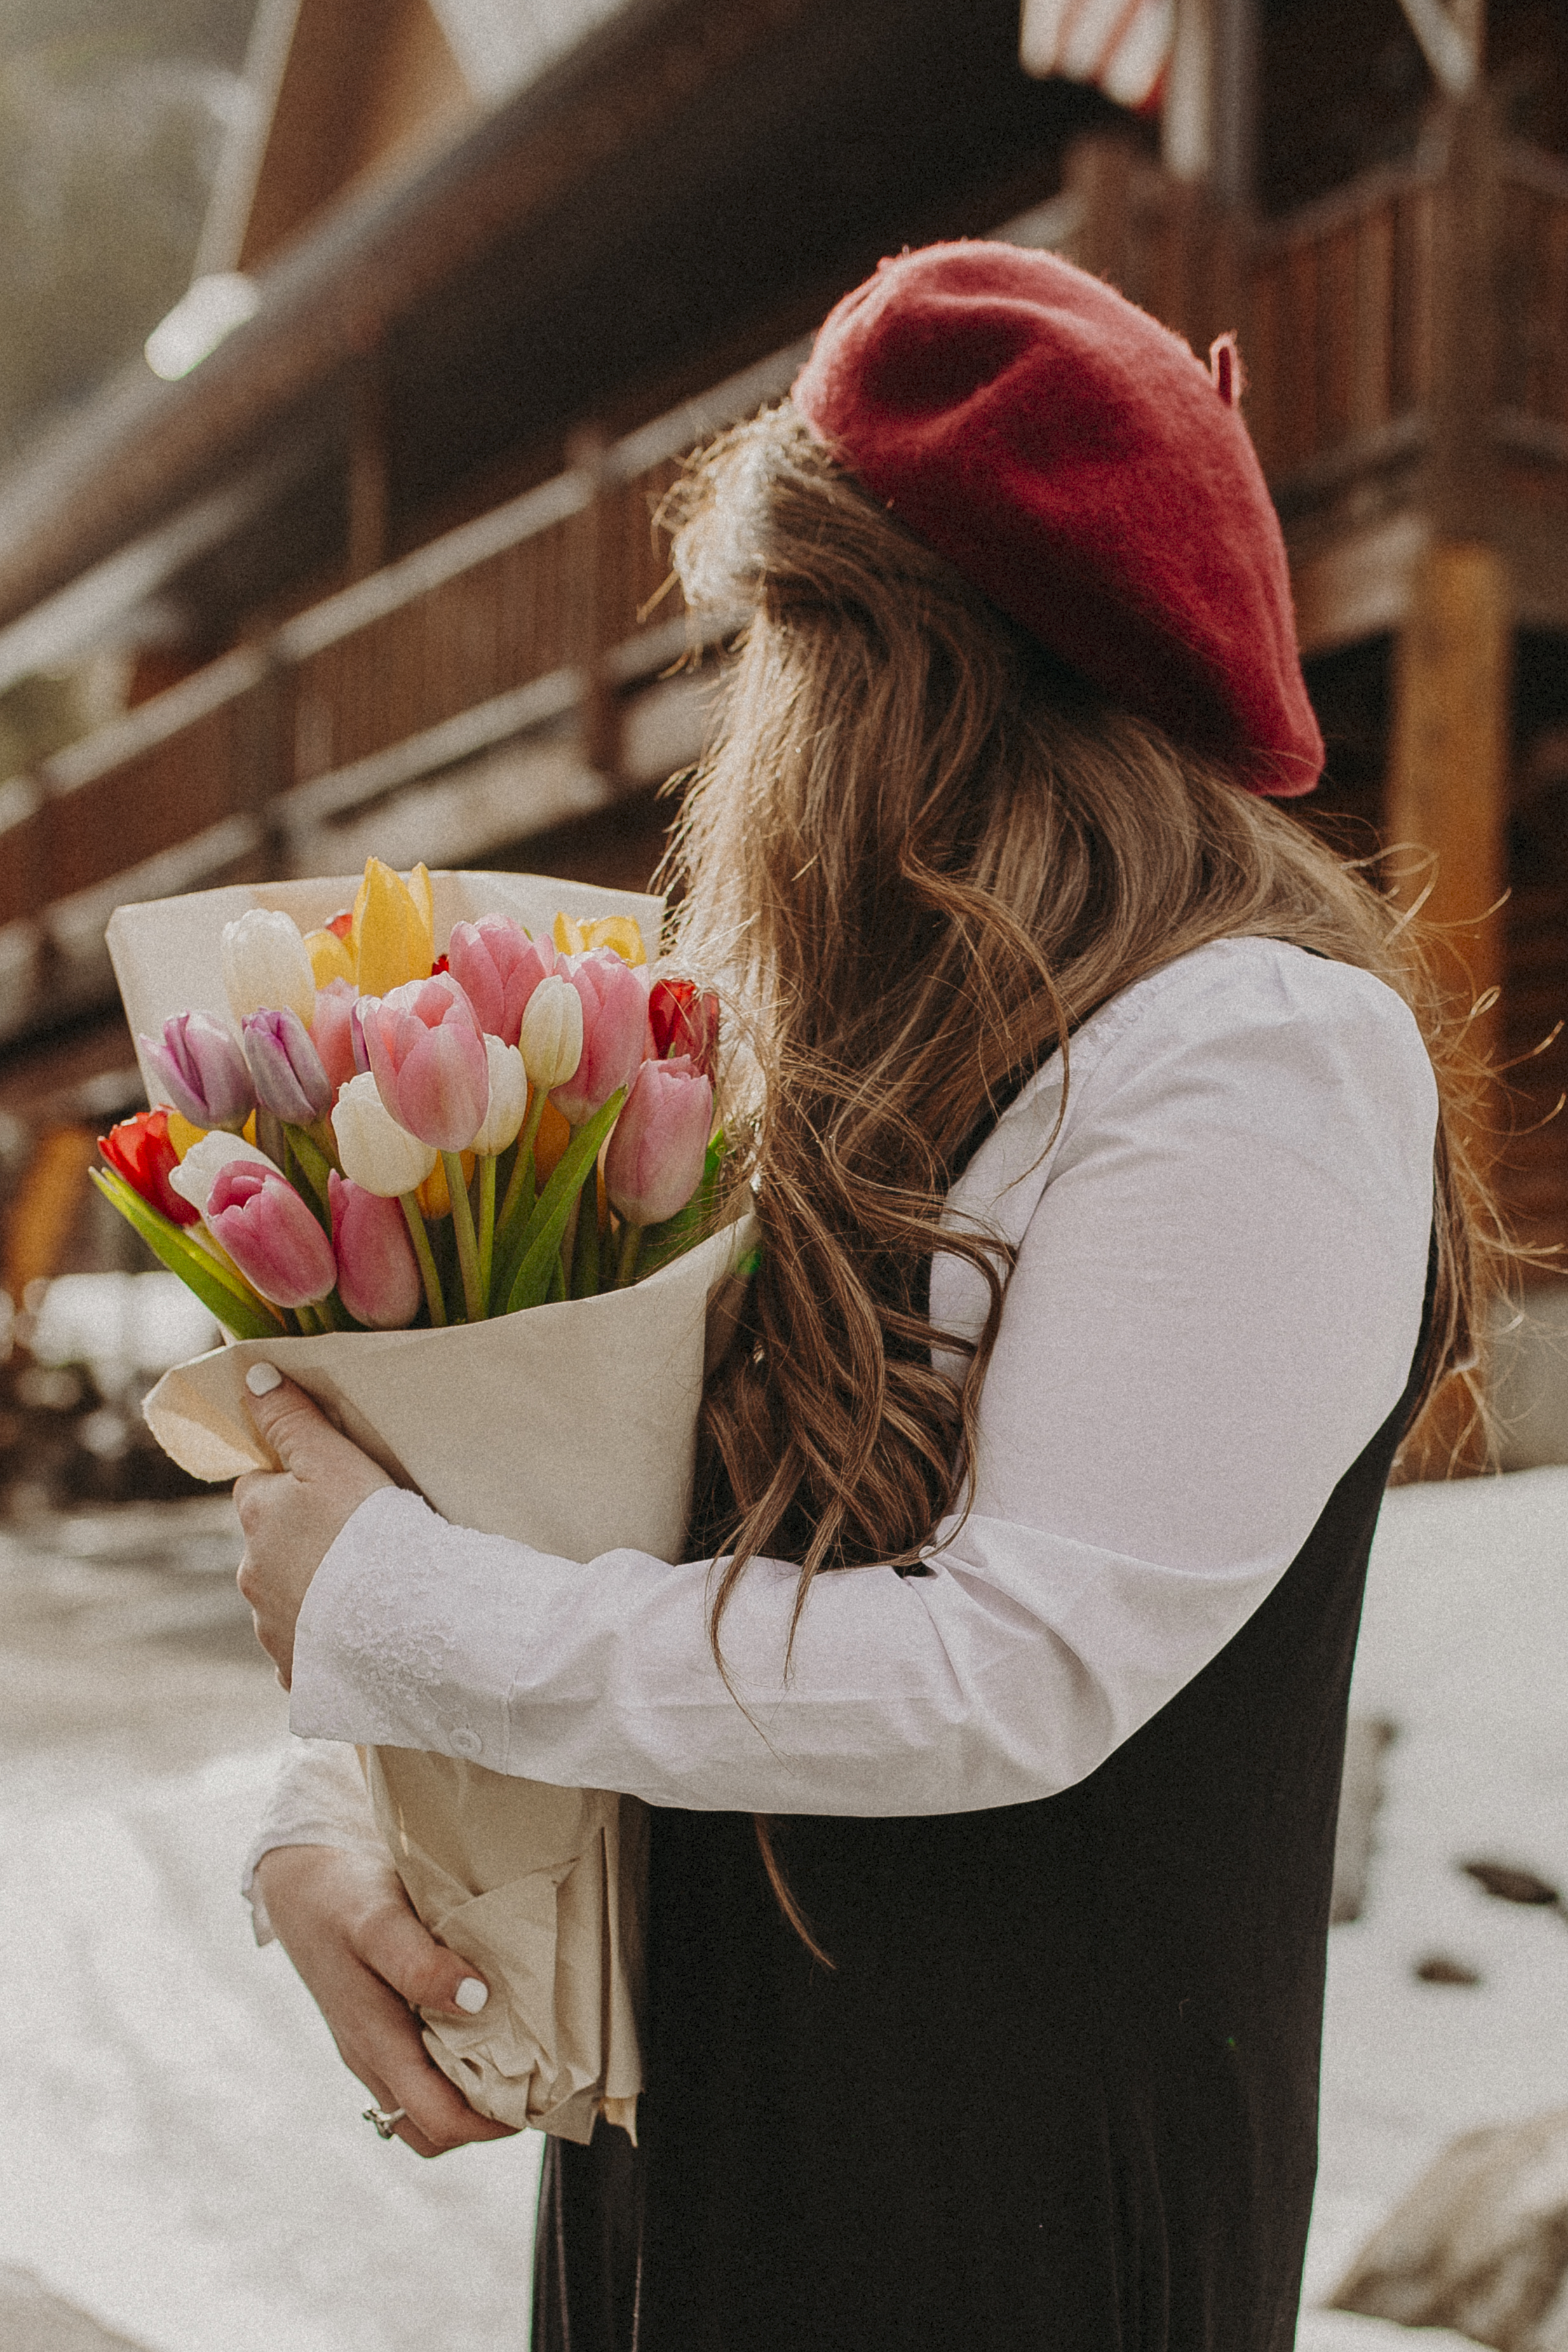 the-bouqs-flower-delivery-service-review-10.jpg